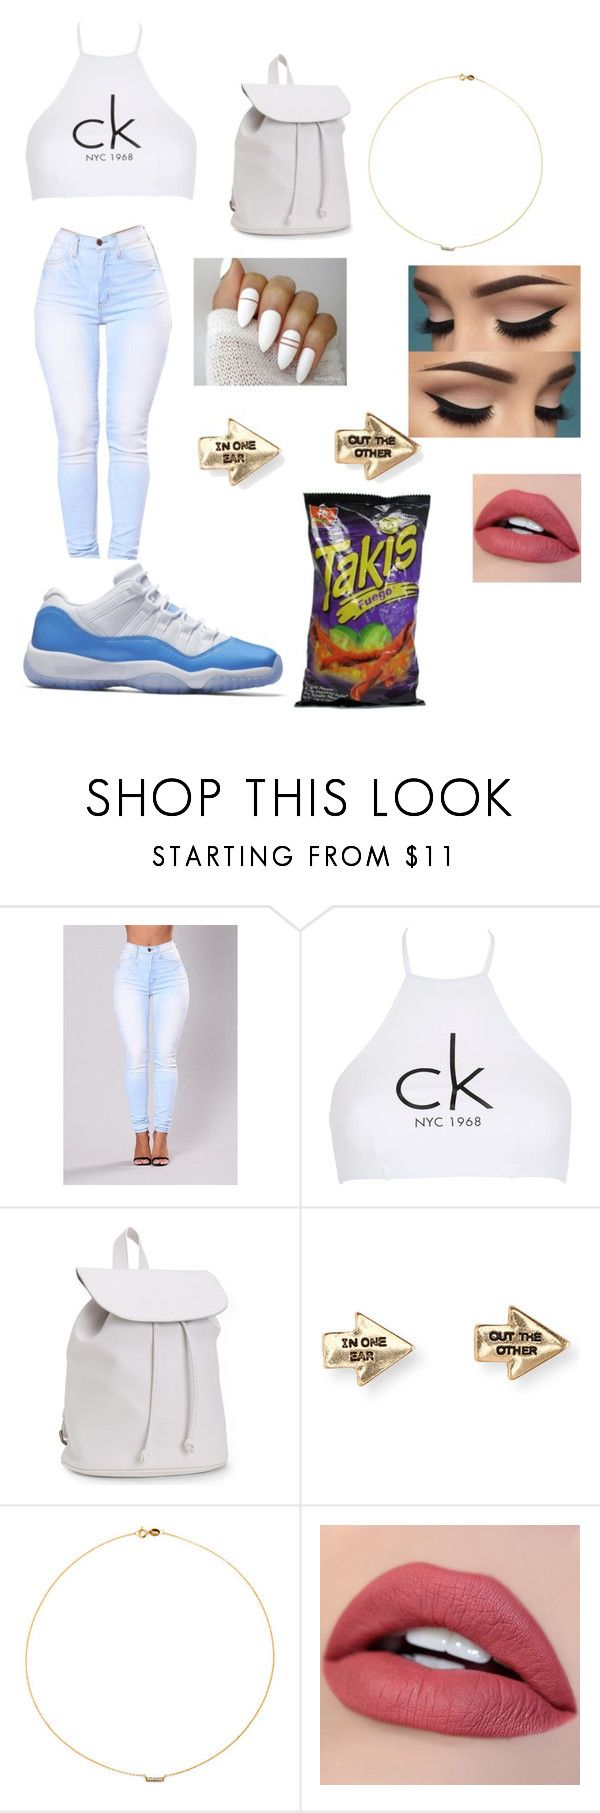 """Untitled #4"" by baby-girlriah ❤ liked on Polyvore featuring Calvin Klein, Aéropostale and Sole Society"